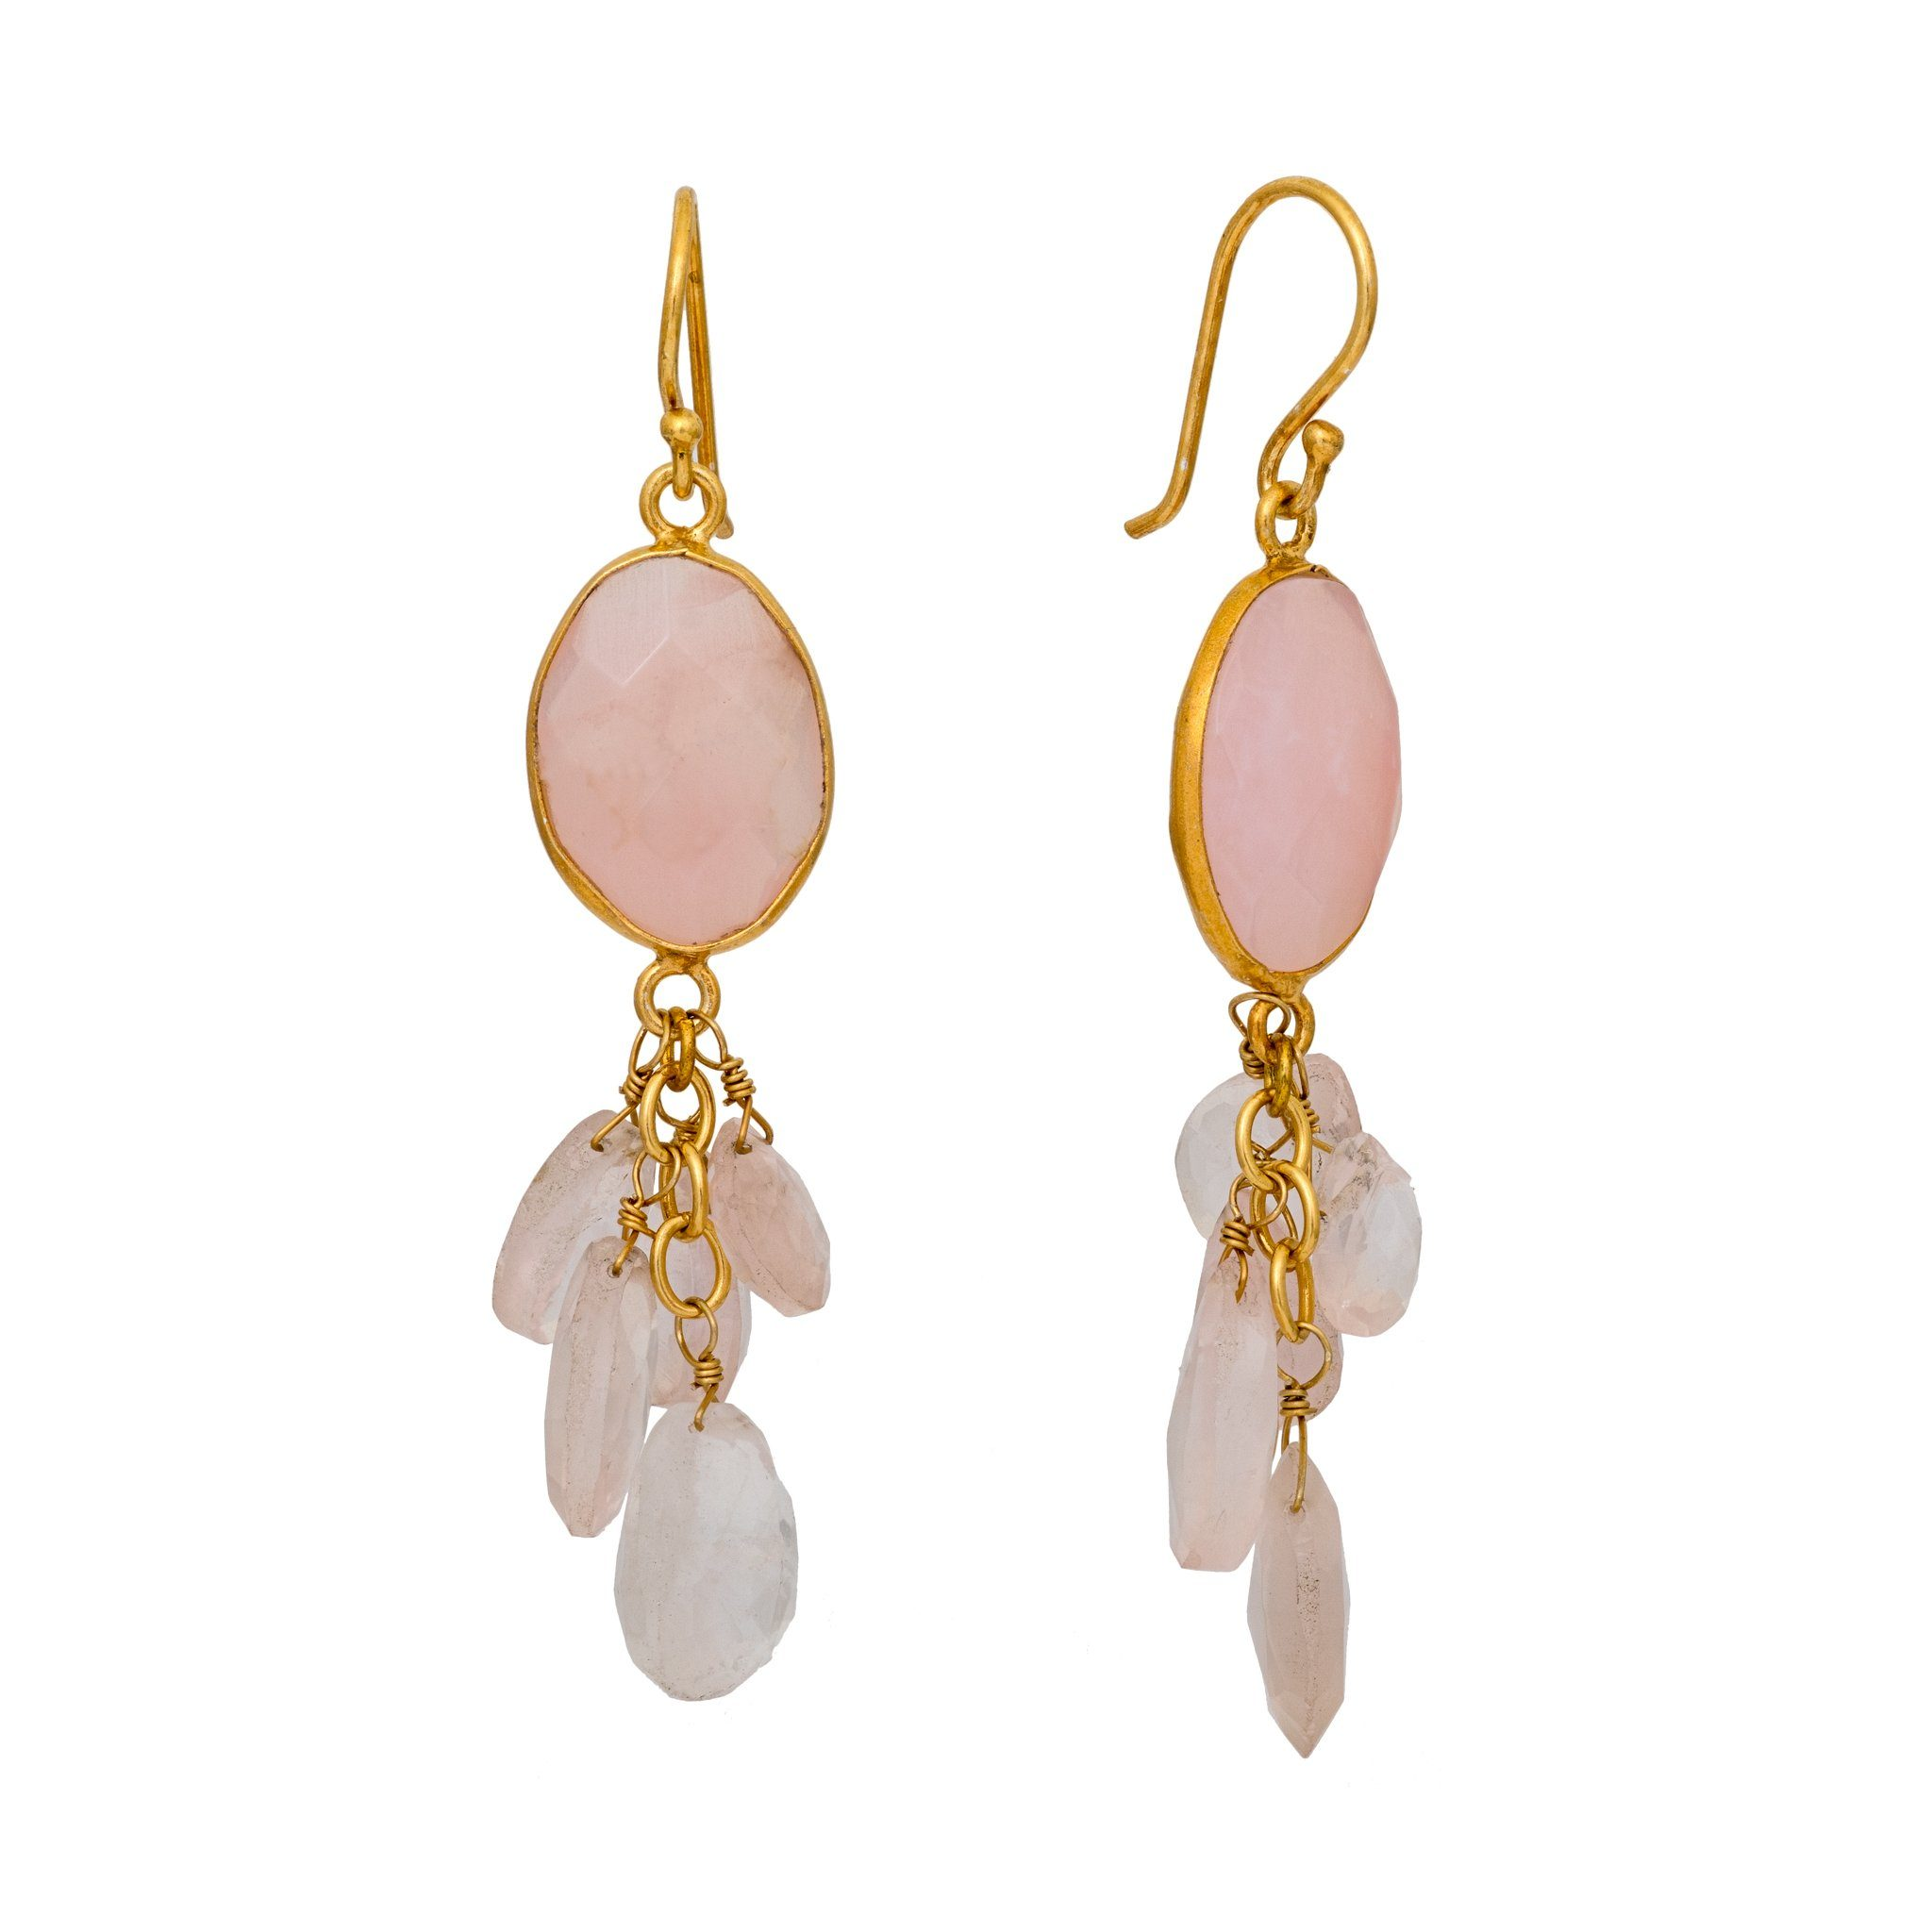 LUZ mix of rose quartz cluster earrings - MadamSiam